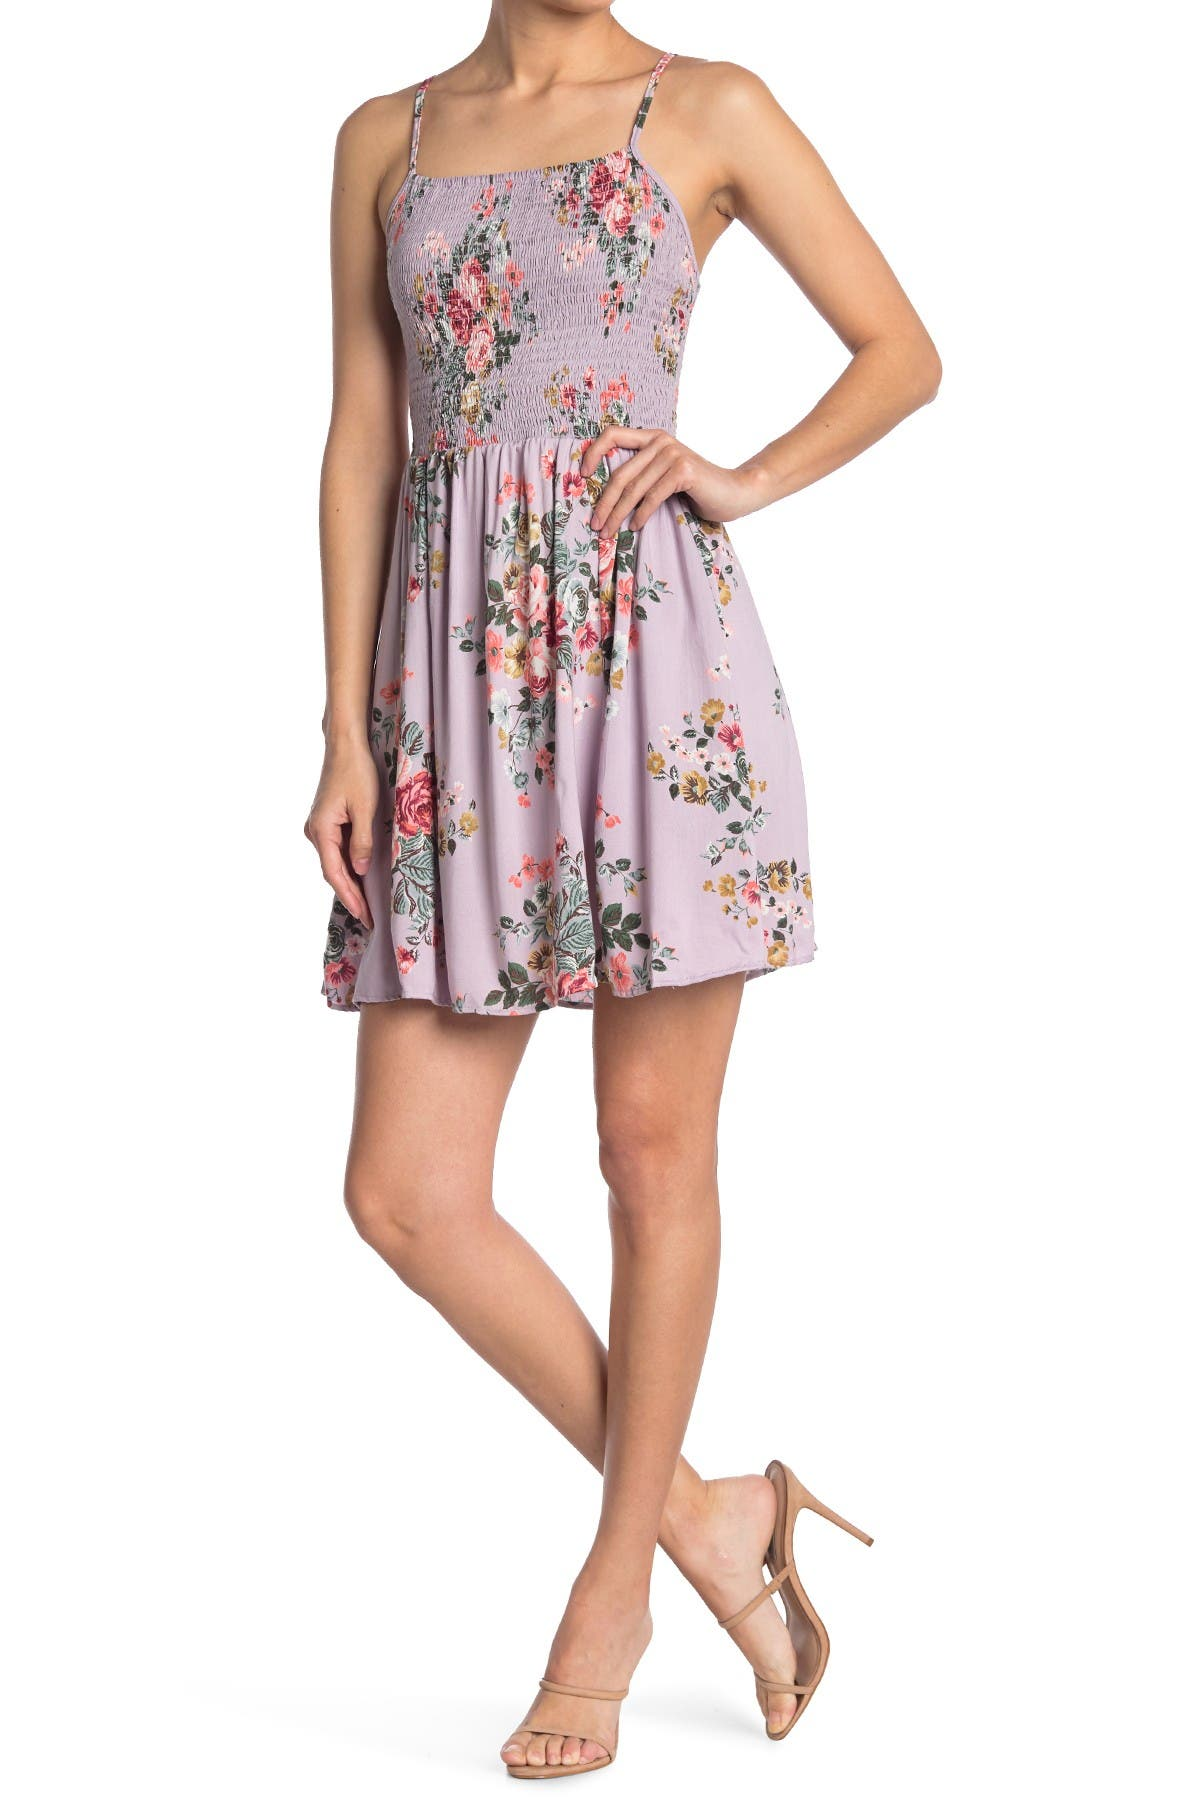 Image of Angie Floral Smocked Mini Dress